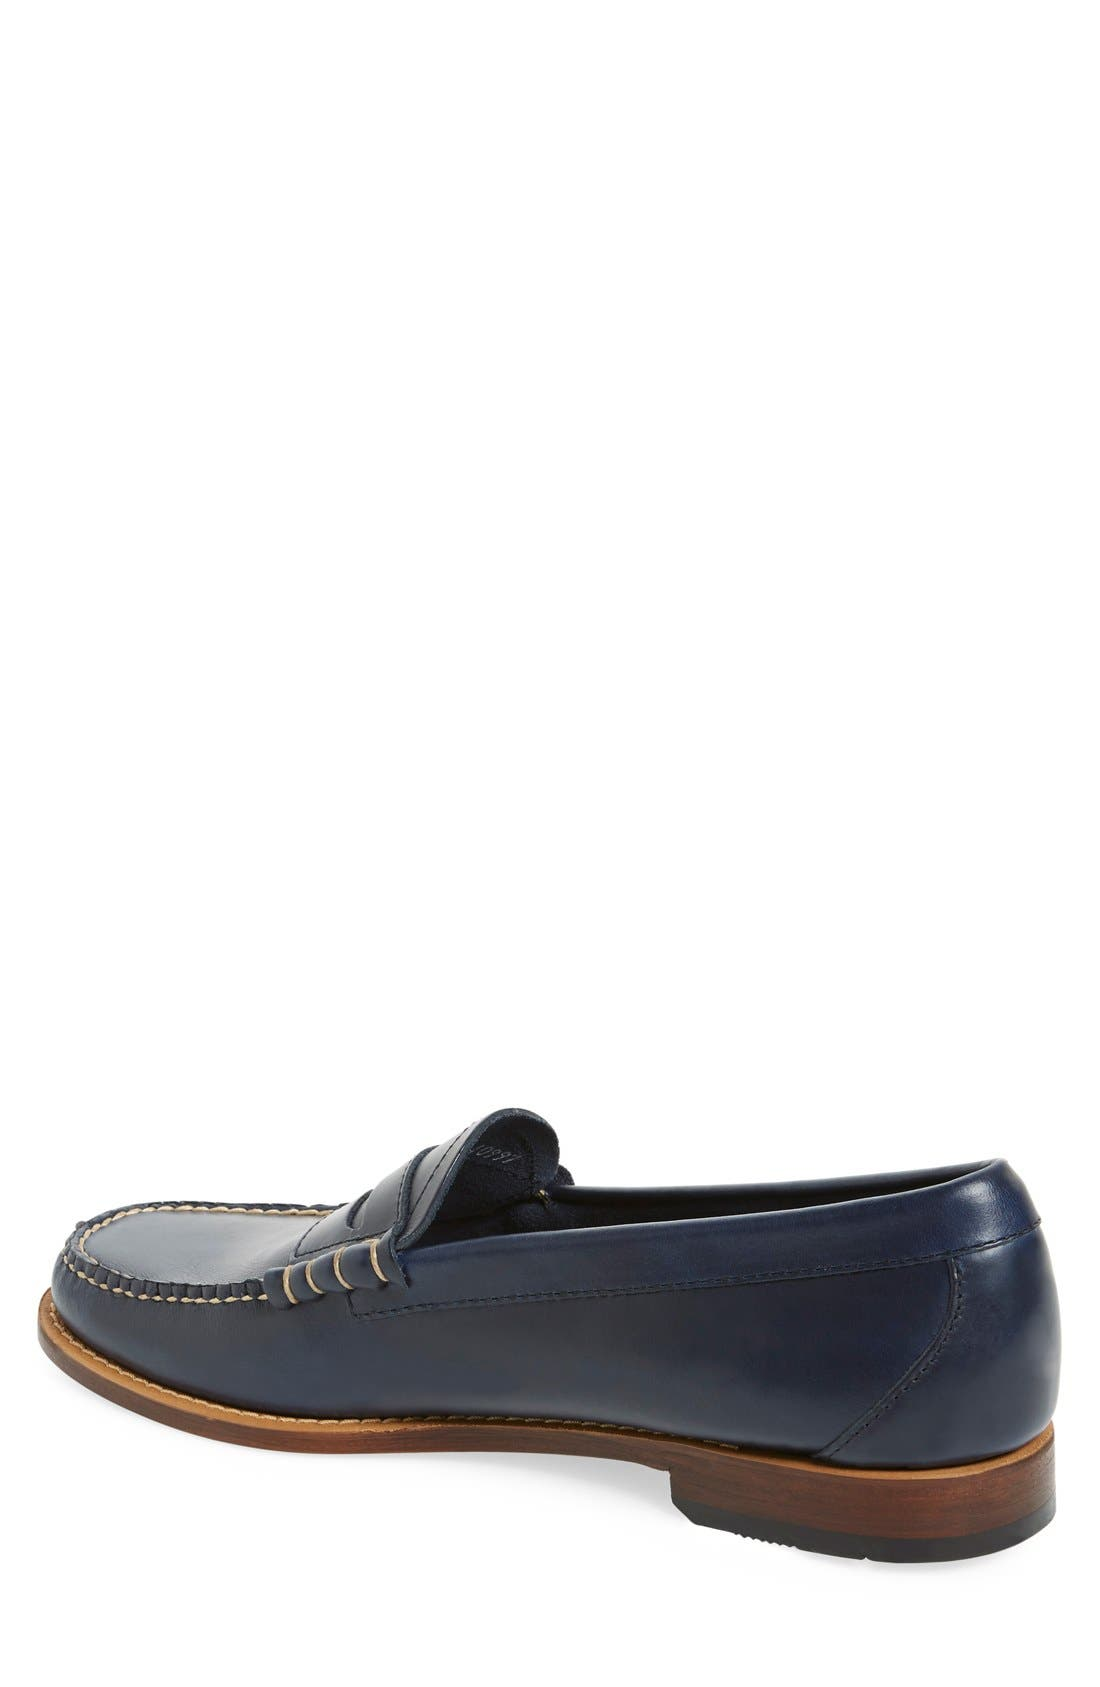 'Larson - Weejuns' Penny Loafer,                             Alternate thumbnail 2, color,                             BLUE LEATHER